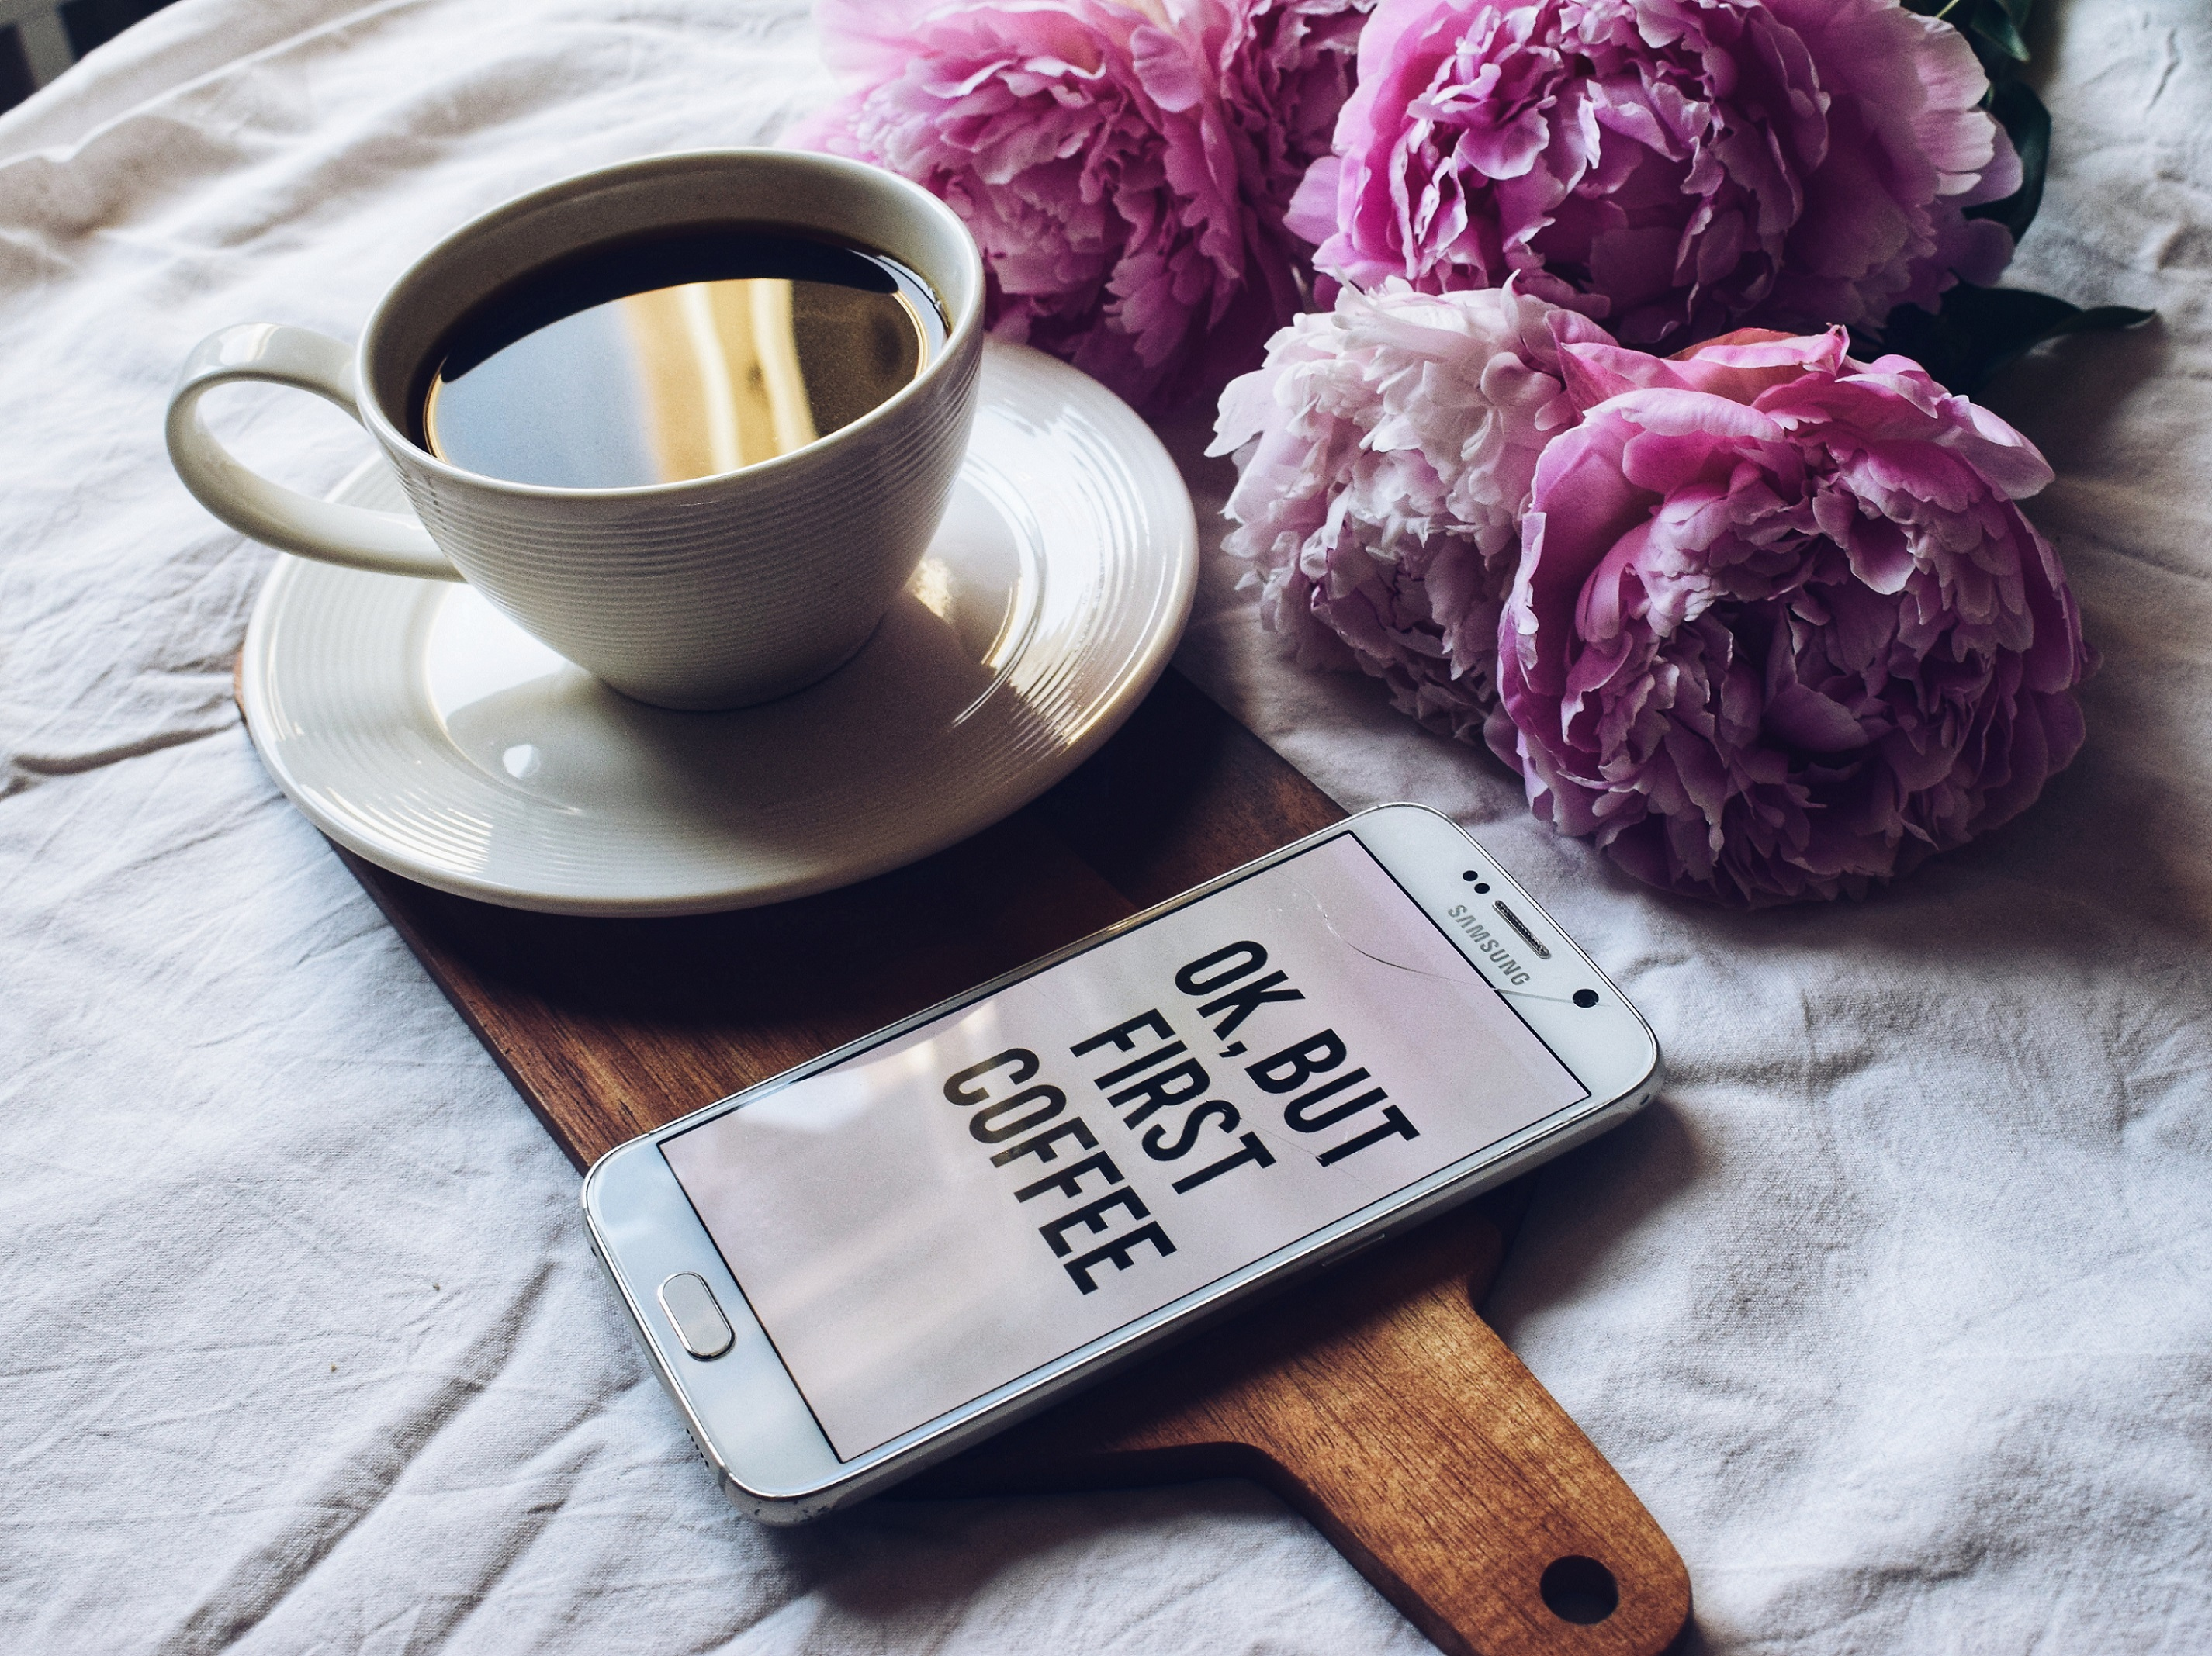 Outlandish blog live without coffee smart phone flat lay photography challenge